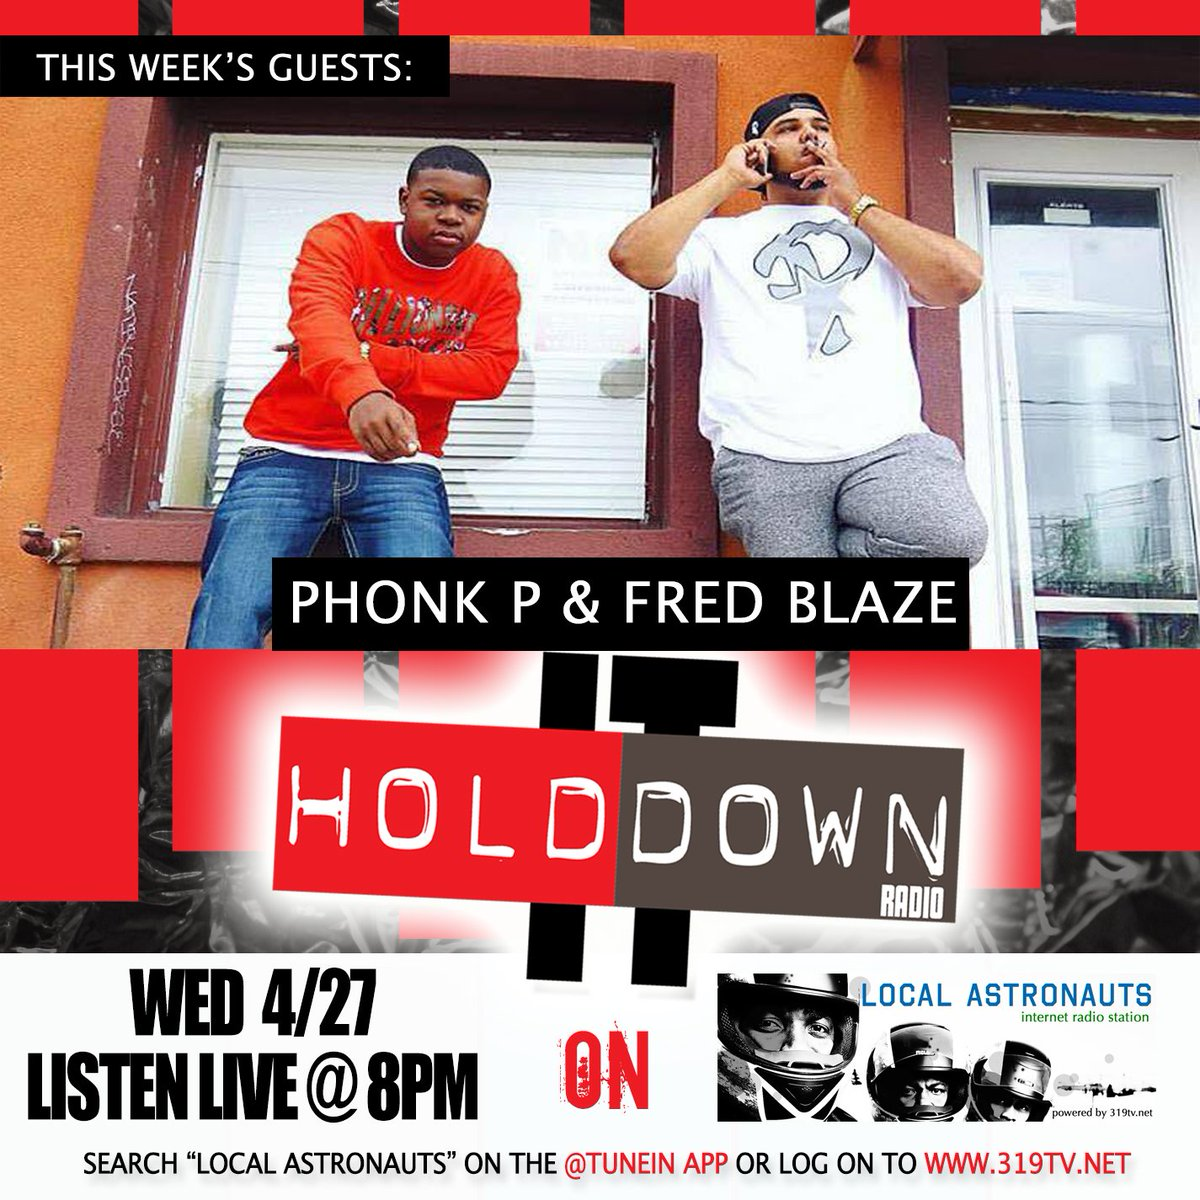 This Wed Check out @HolditDownRadio on @LocalAstronauts w/ guests @phonkp @_fredblaze https://t.co/IG1pvCvW9S https://t.co/JTsRr3u5Kj